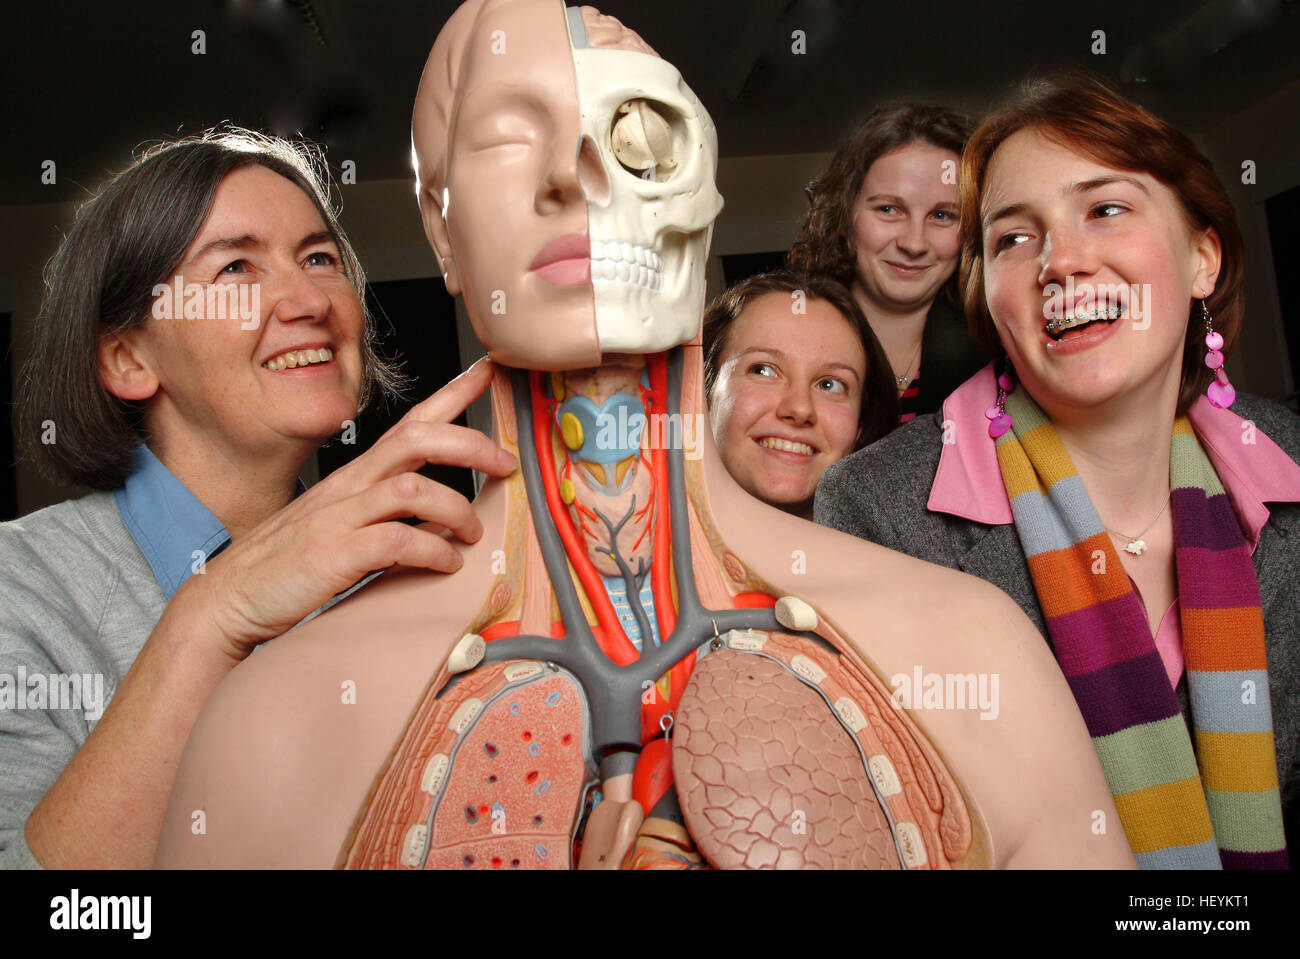 Anatomy Lesson Medical Students Stock Photos & Anatomy Lesson ...